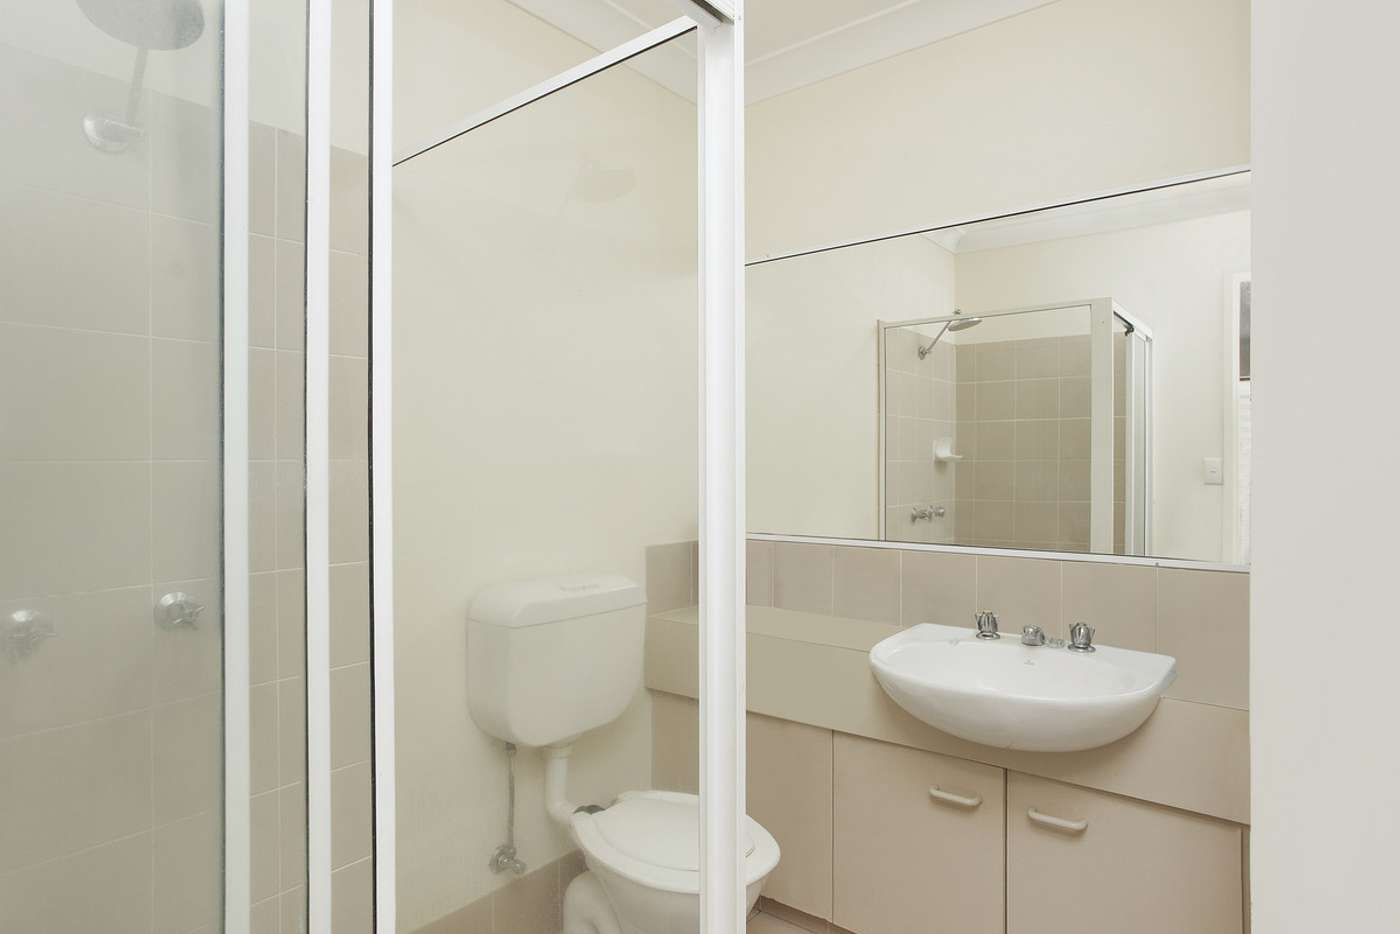 Seventh view of Homely unit listing, 250/19 Burleigh Street, Burleigh Heads QLD 4220